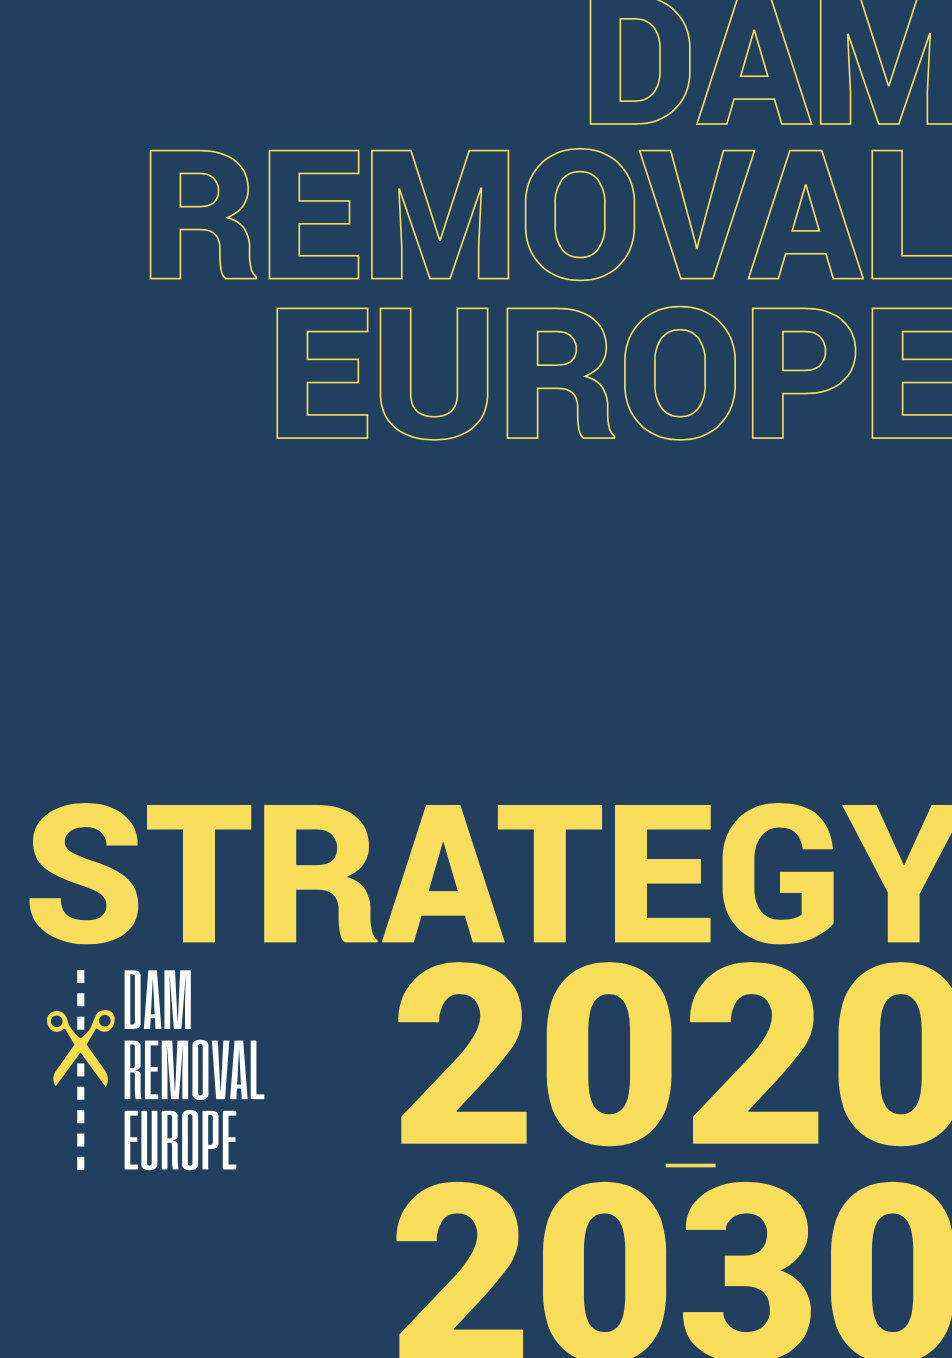 The future of Dam Removal Europe